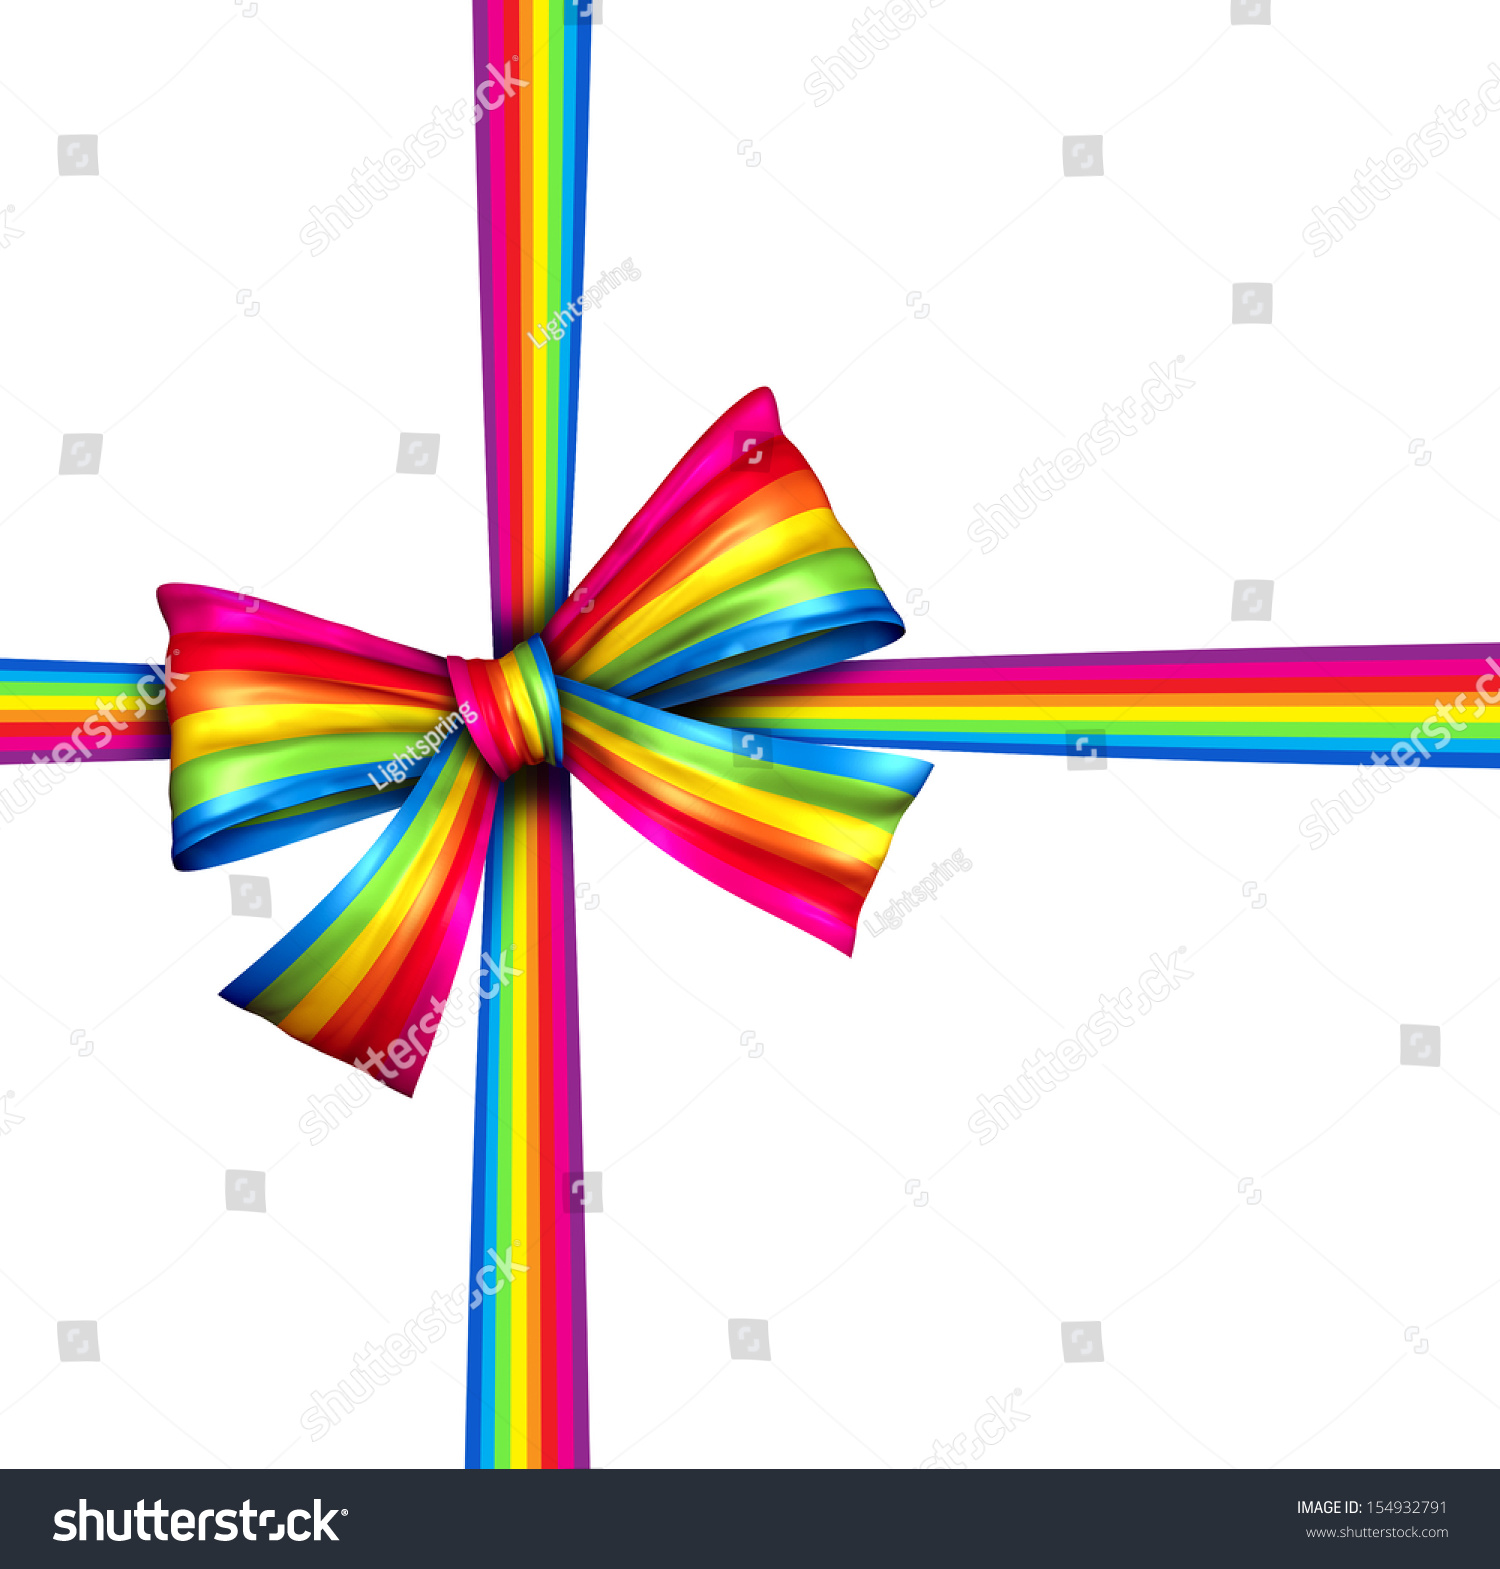 Royalty Free Stock Illustration of Rainbow Gift Ribbon Bow Silk